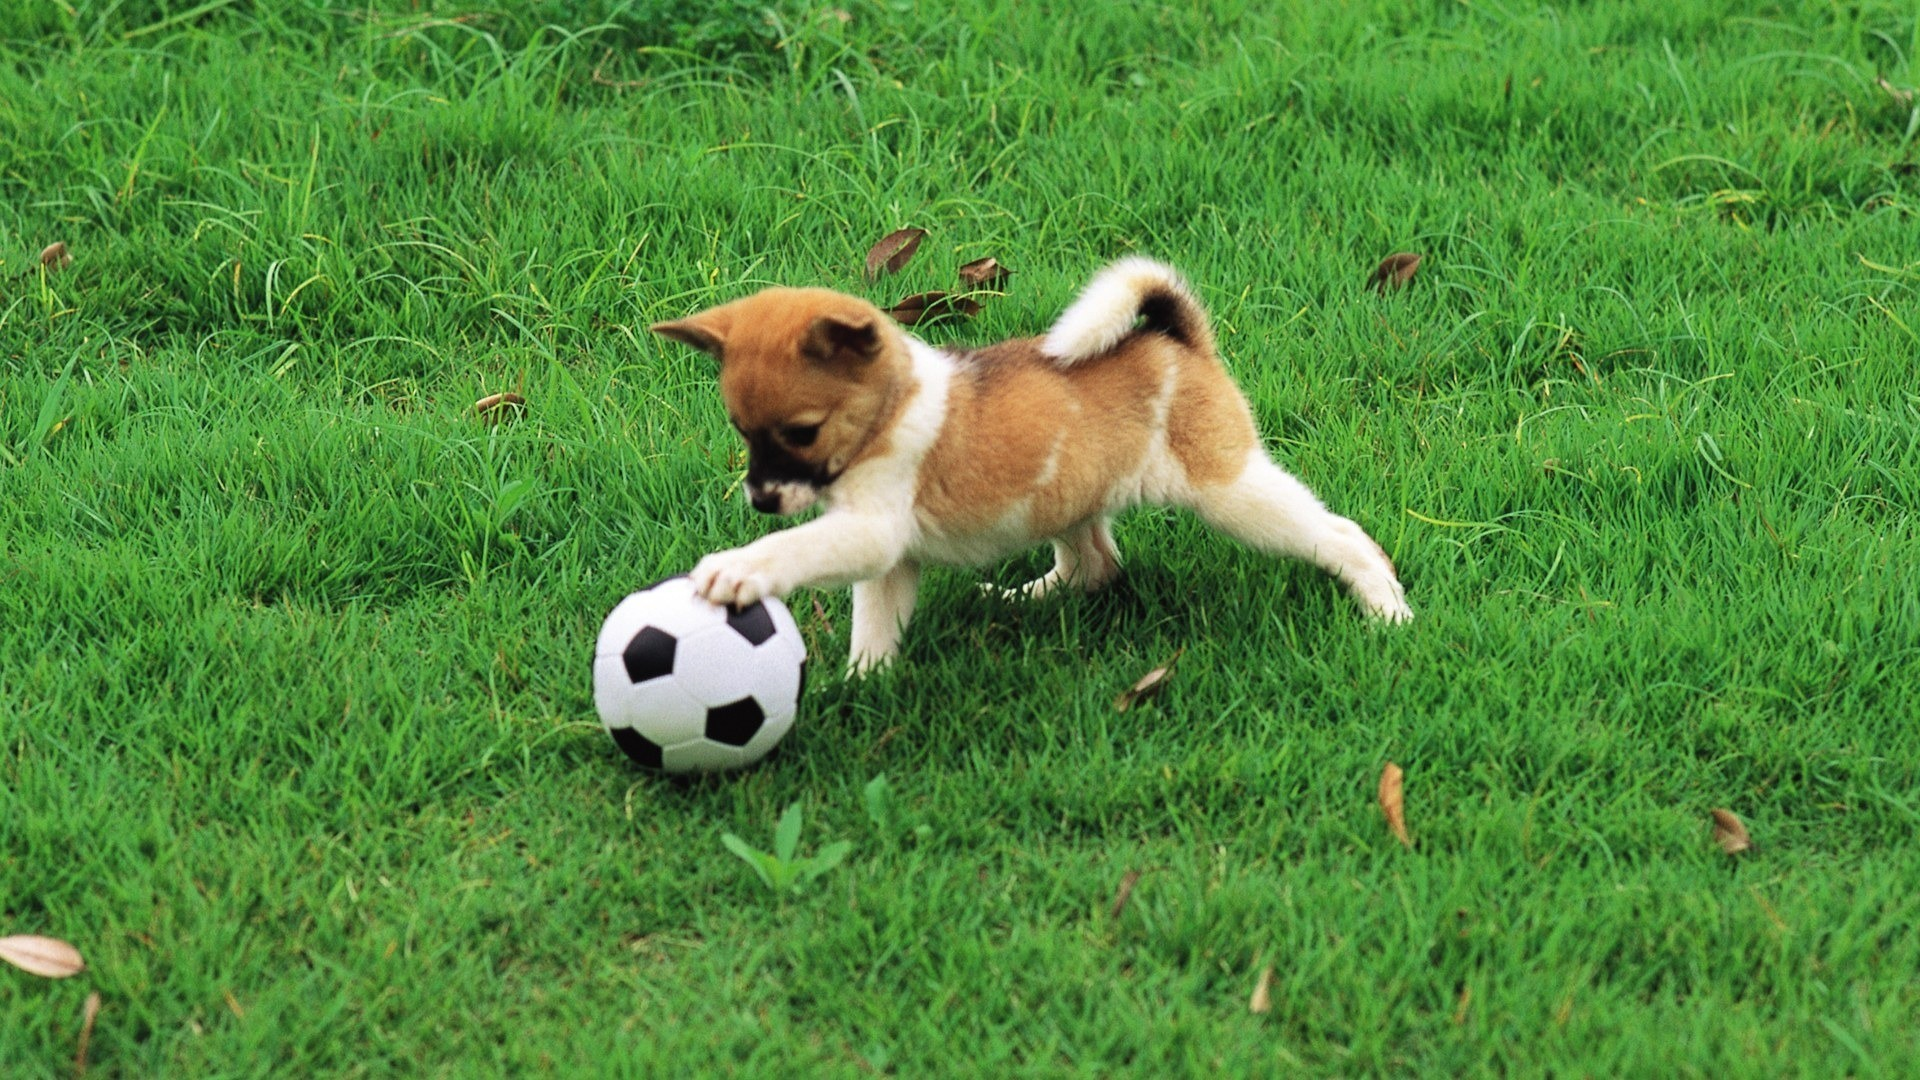 Puppy Playing with Ball 1 For Desktop Background